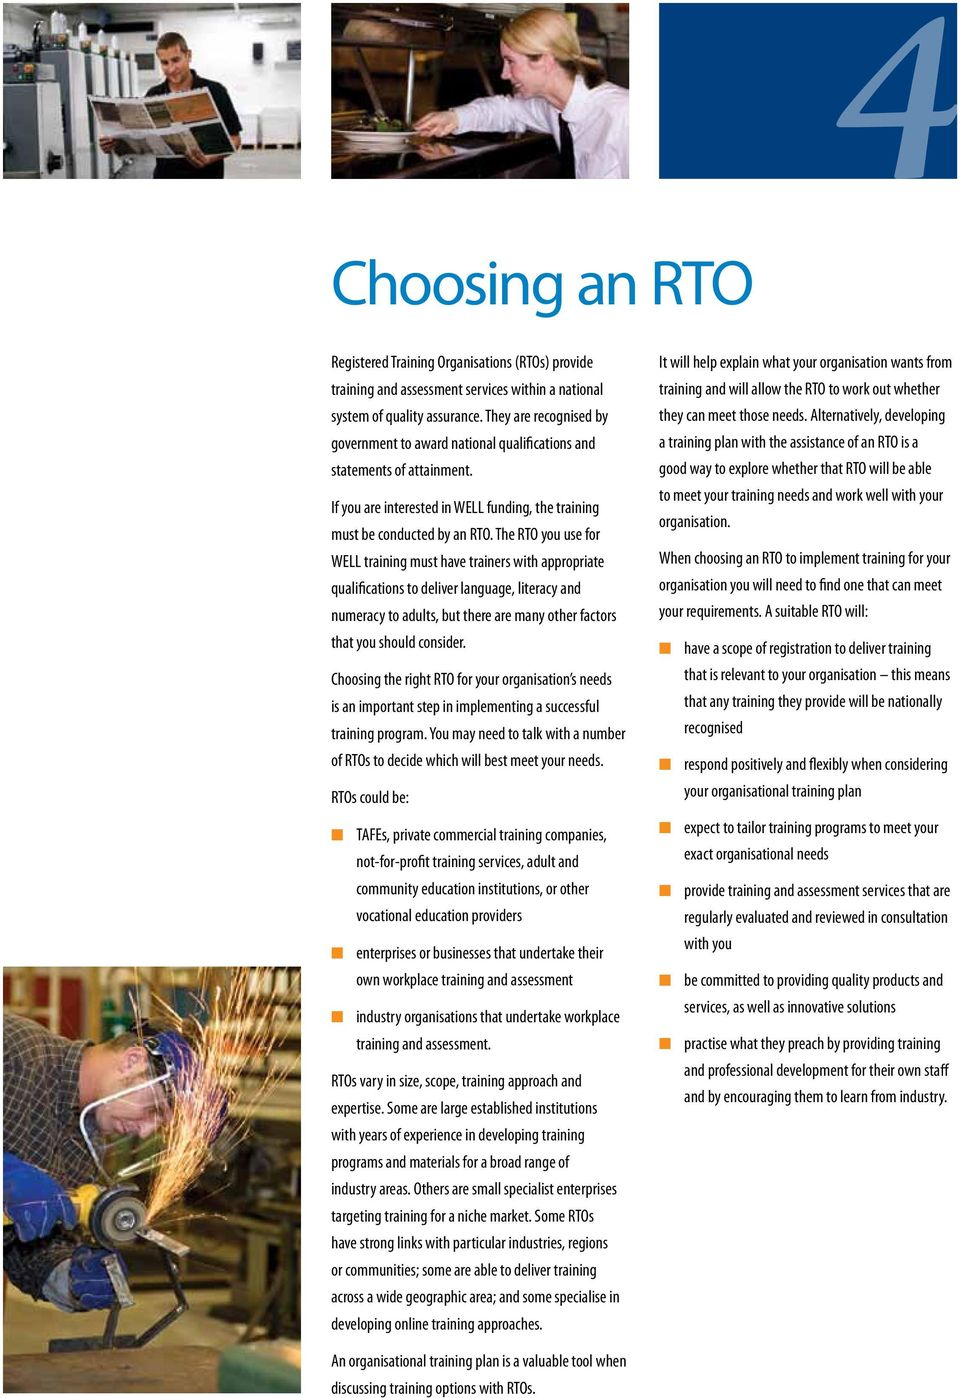 The RTO you use for WELL traiig must have traiers with appropriate qualificatios to deliver laguage, literacy ad umeracy to adults, but there are may other factors that you should cosider.